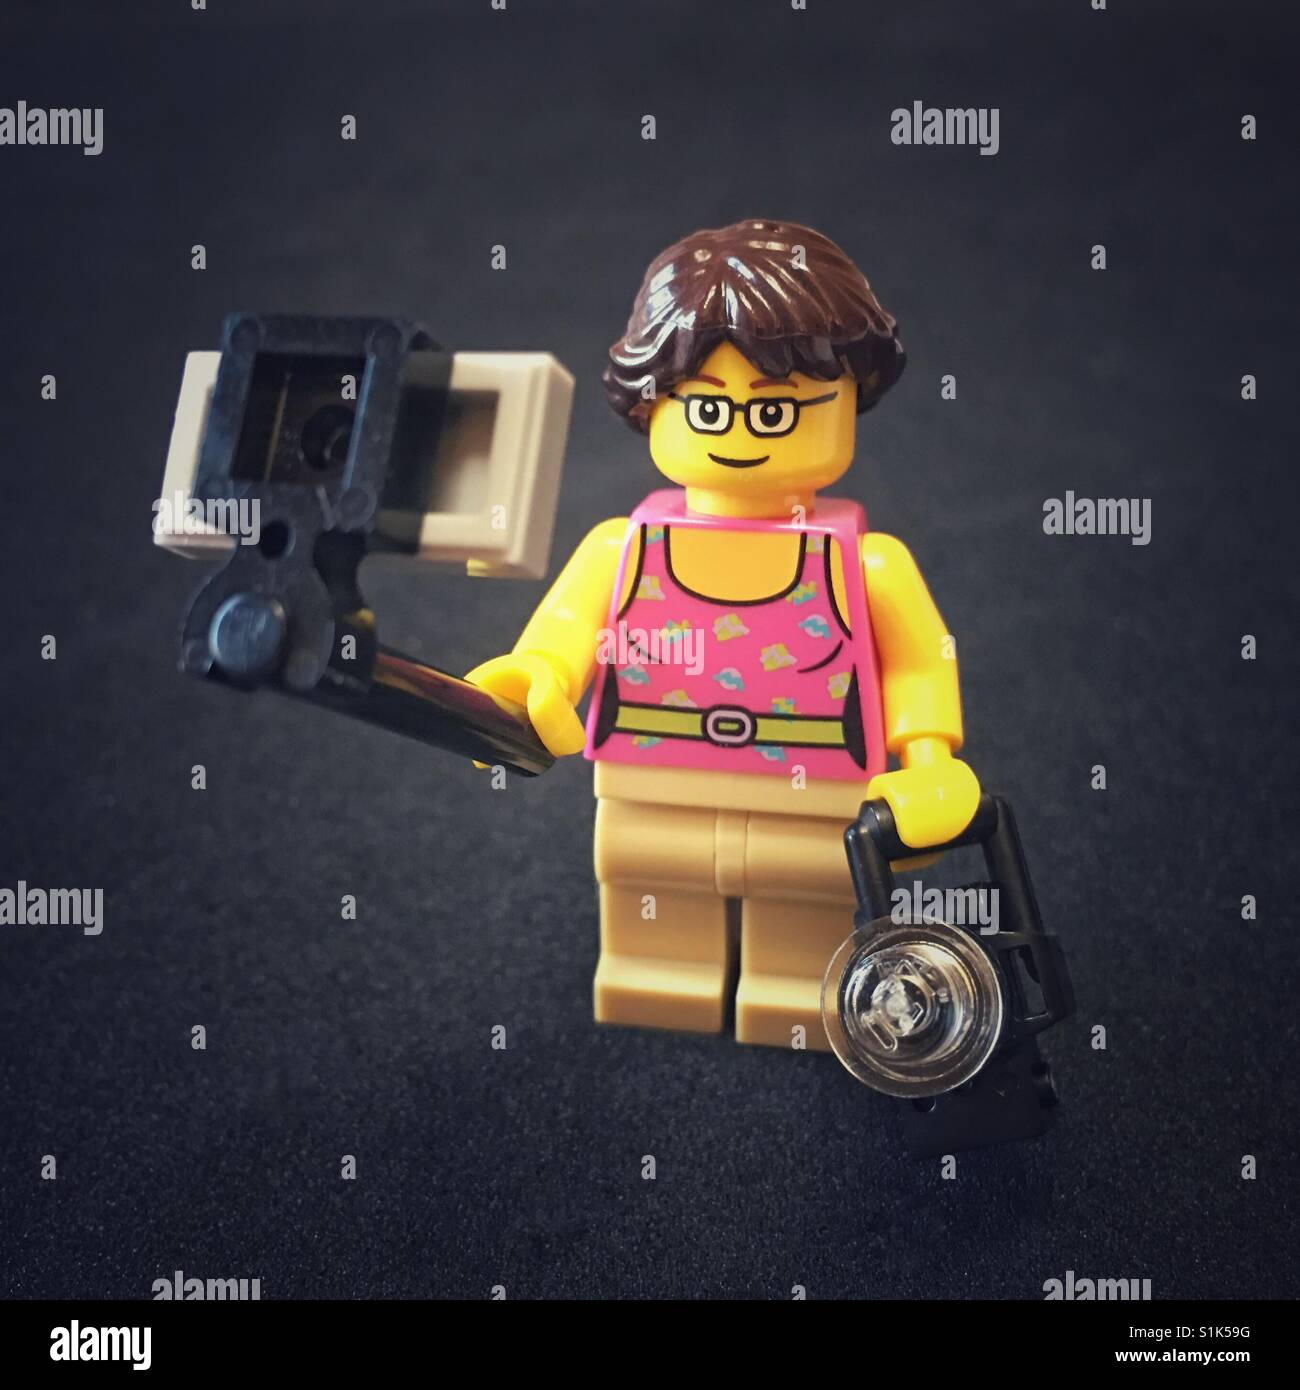 My LEGO likeness holding a selfie stick and camera - Stock Image